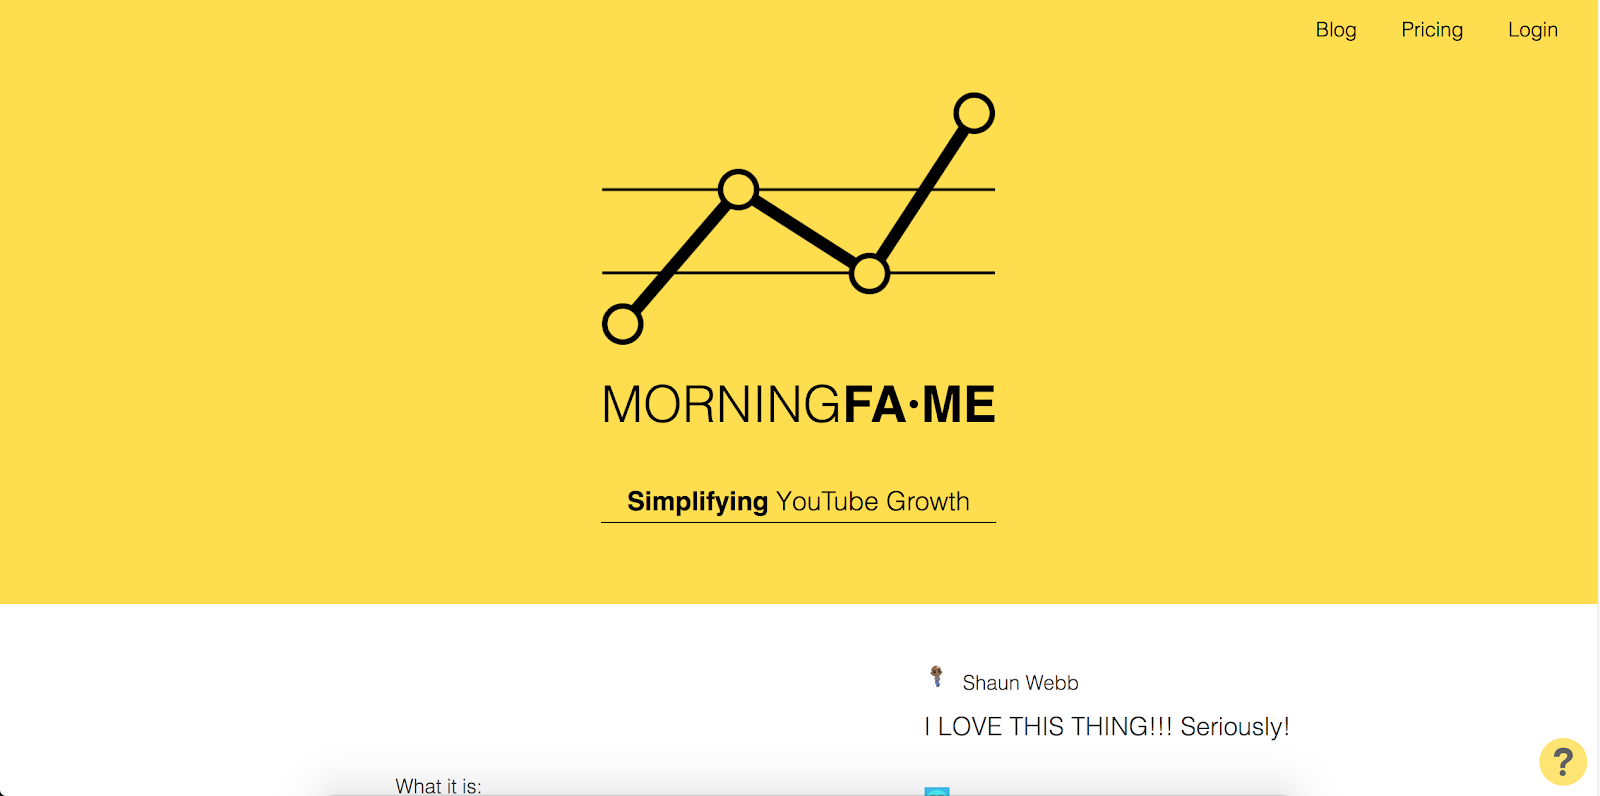 Top Marketing Tool Example #11 - Morningfa.me | 16 Powerful Marketing Tools You Haven't Considered (But Probably Should)